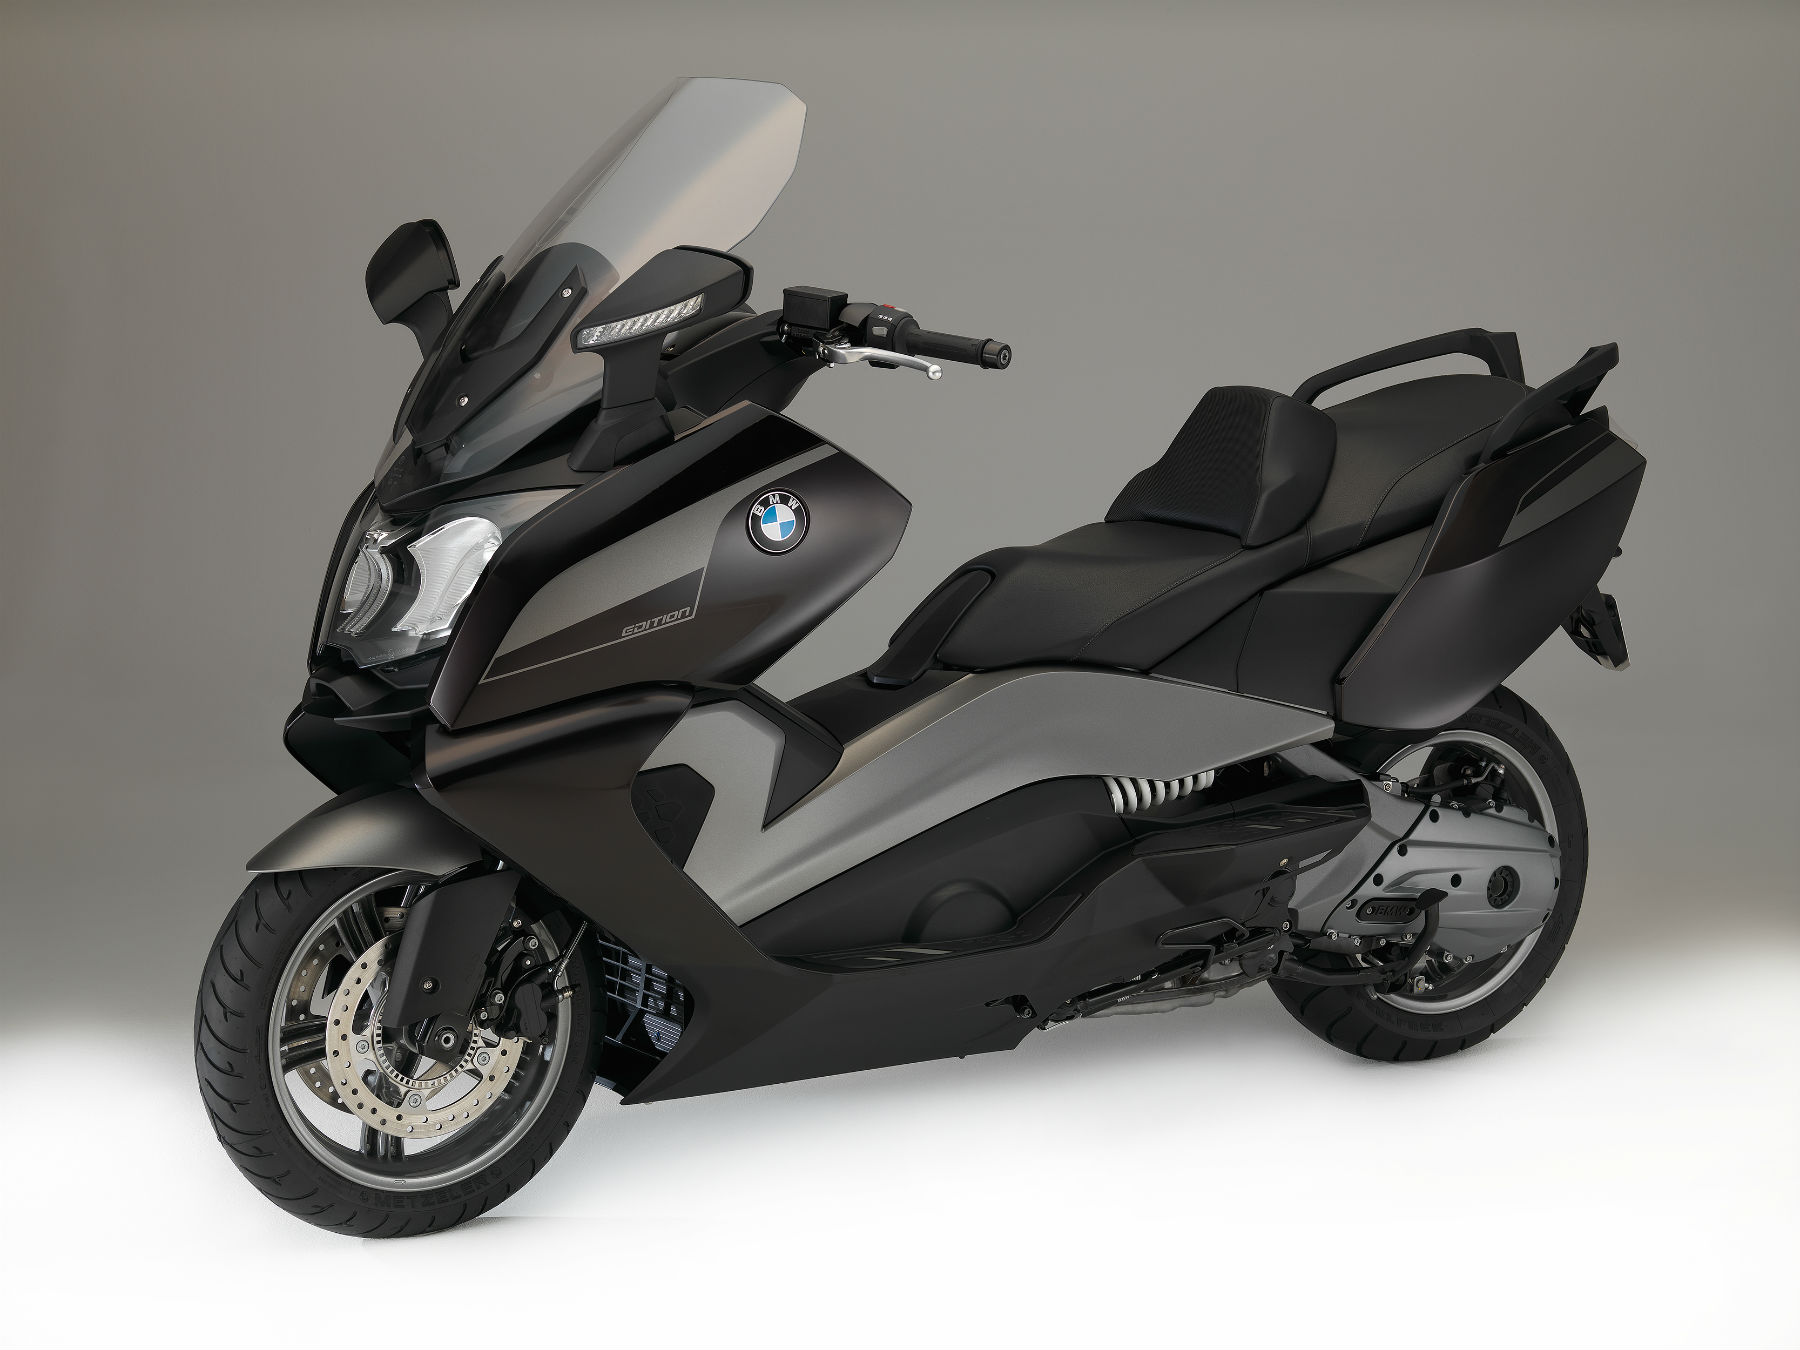 BMW unveil special edition C 600 Sport and C 650 GT